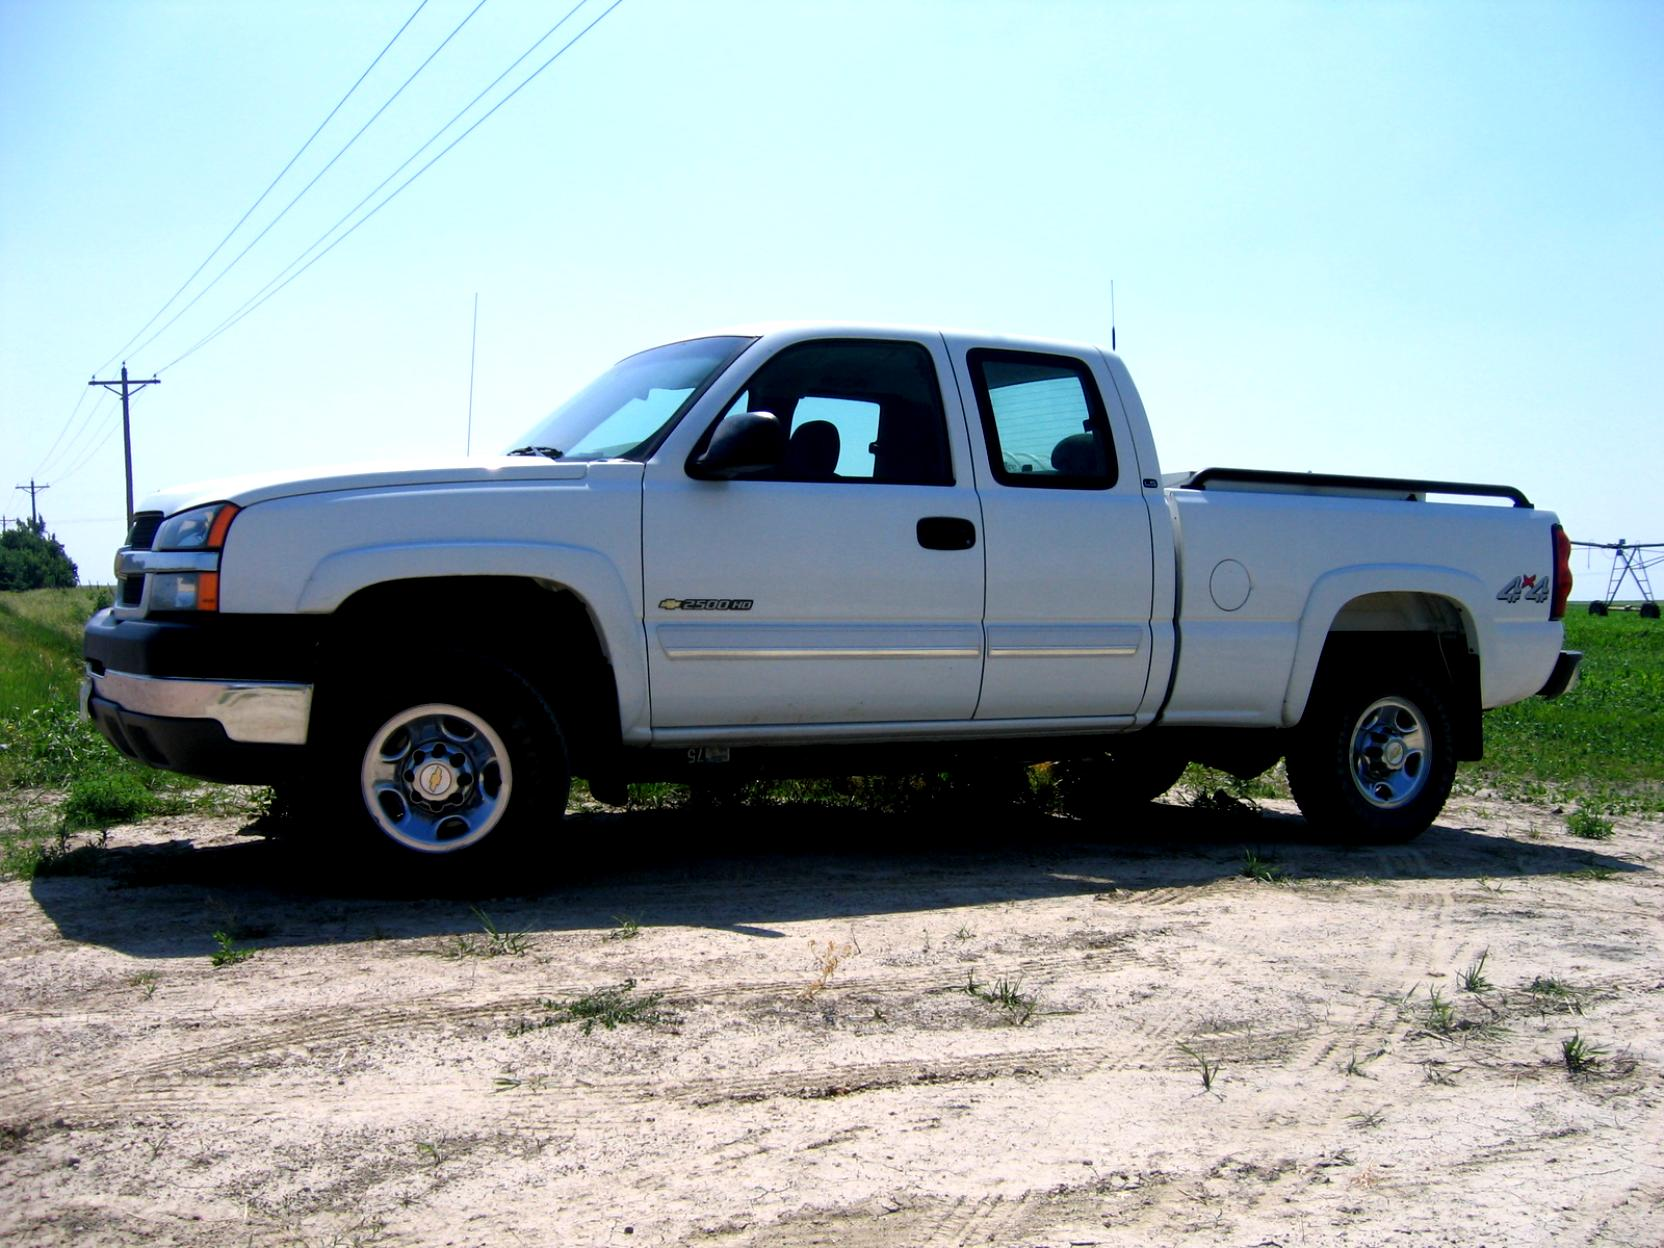 Chevrolet Silverado 2500HD Regular Cab 2008 #46